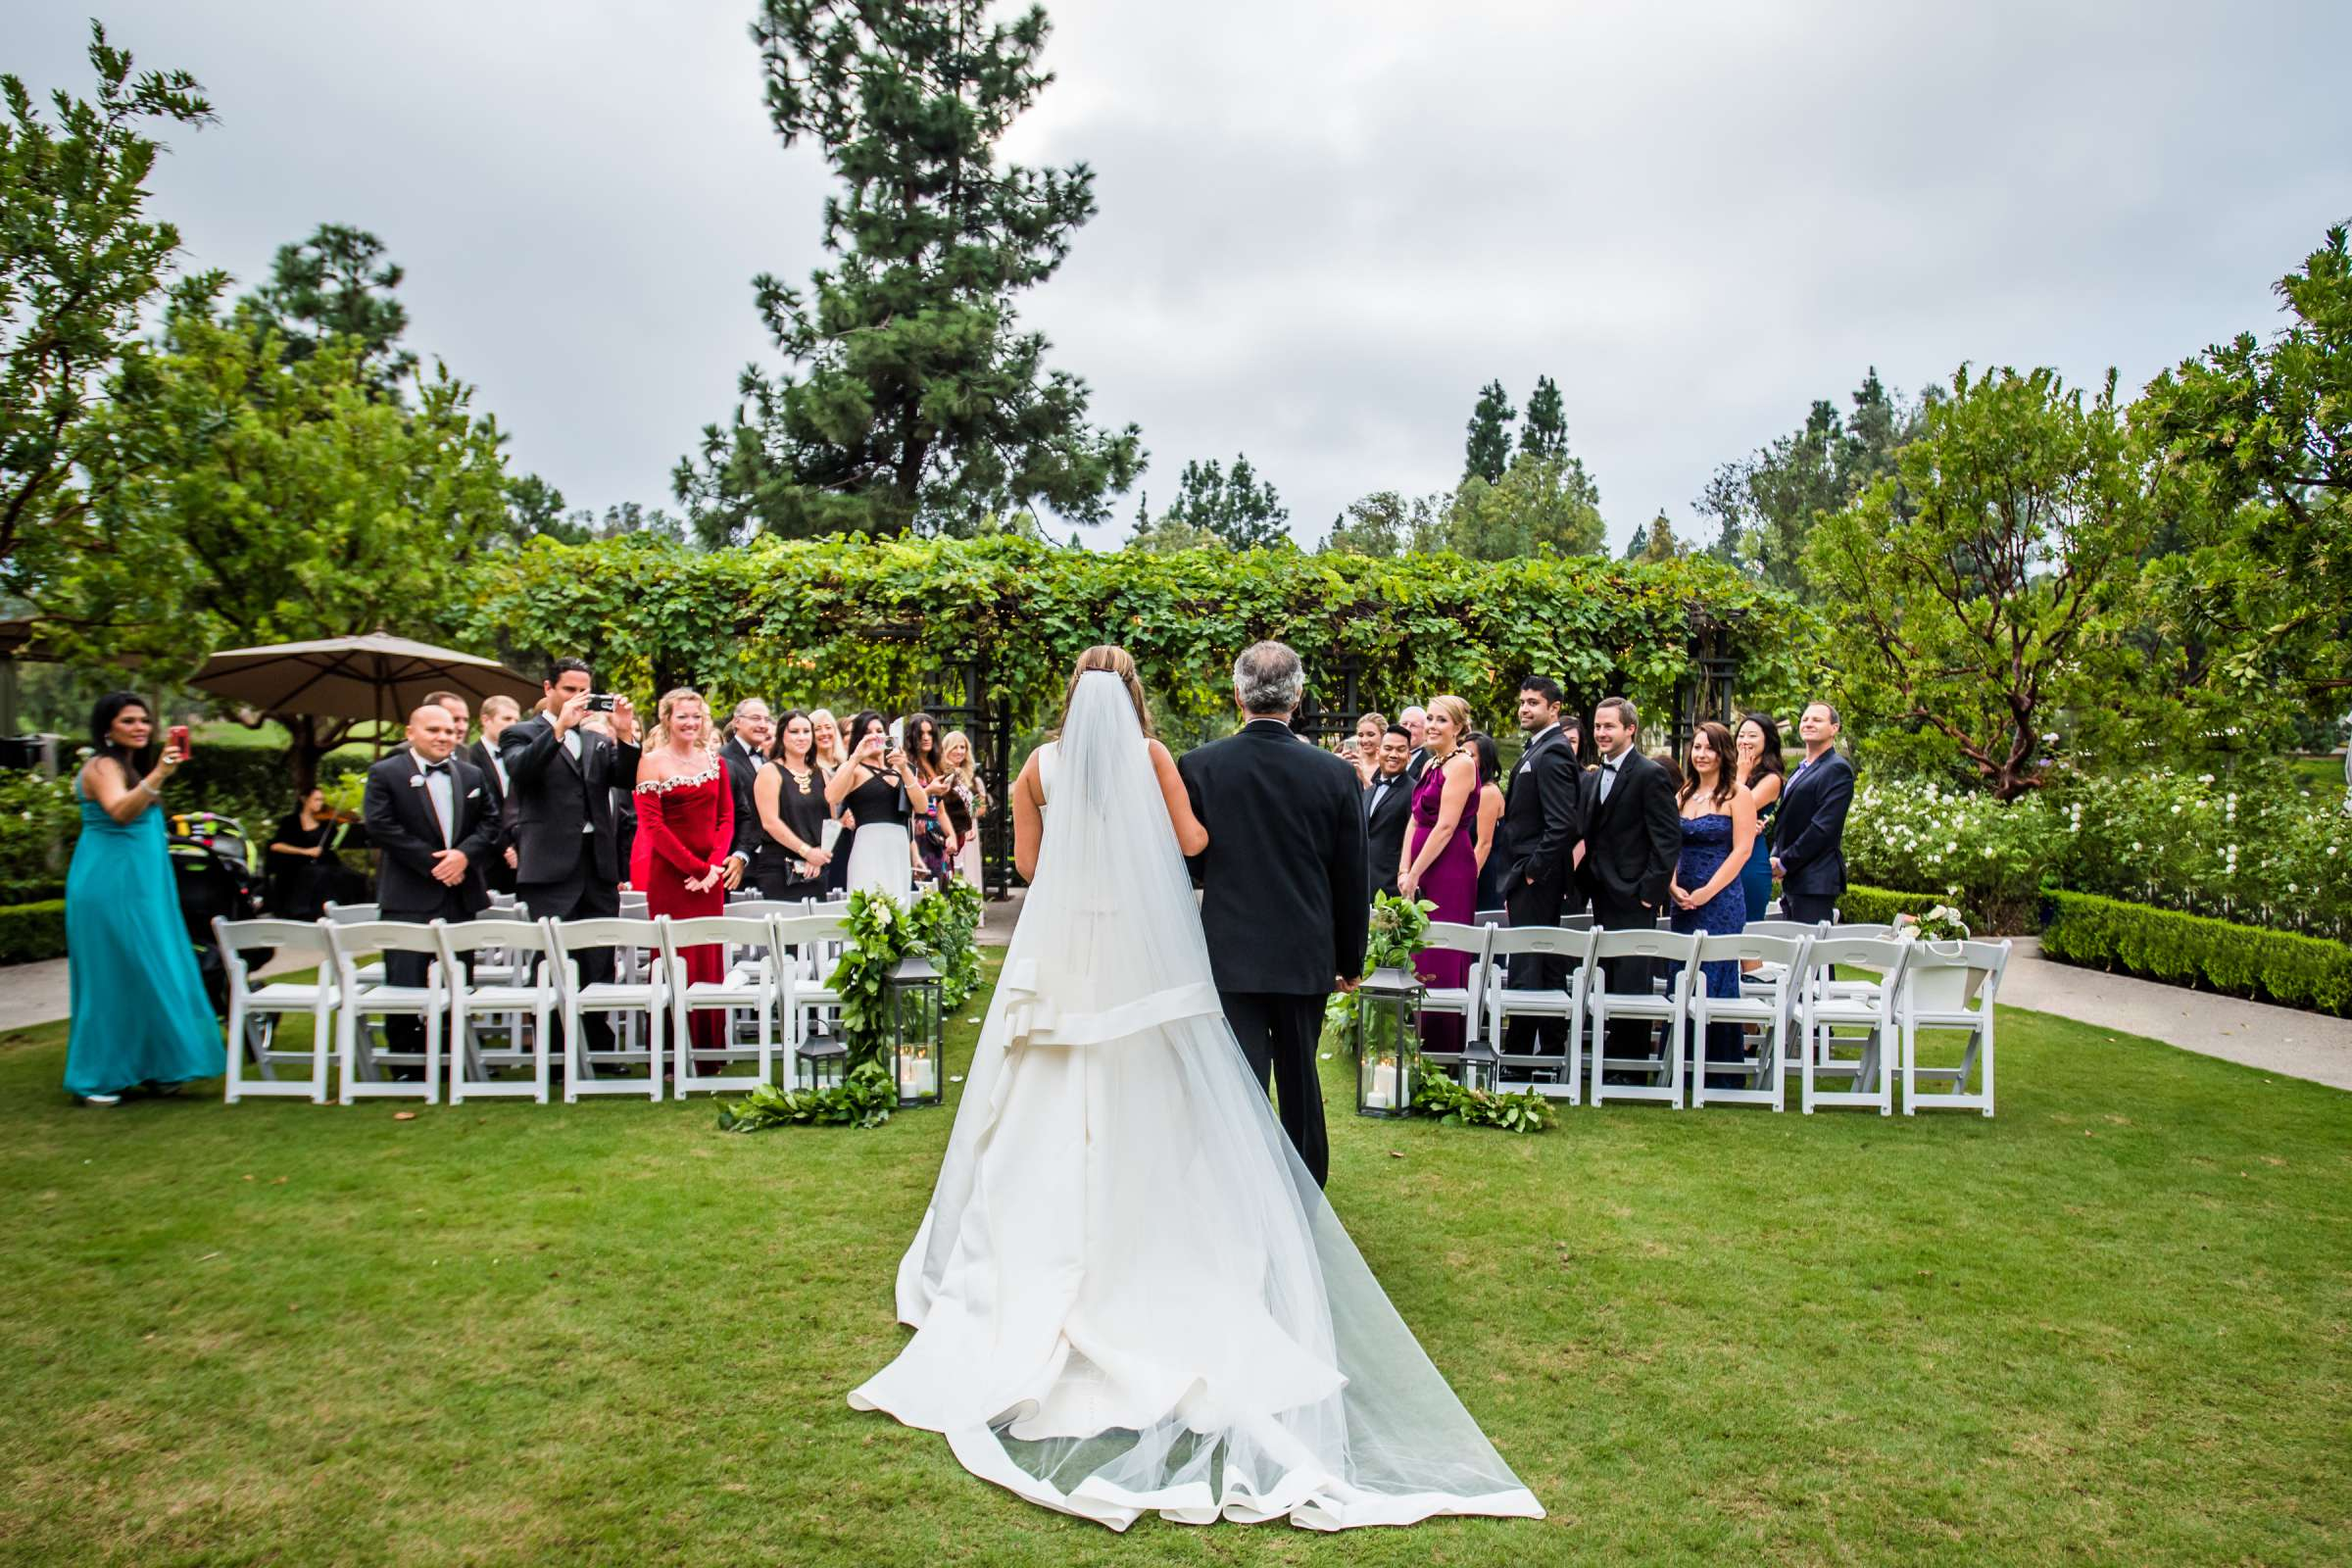 Rancho Bernardo Inn Wedding coordinated by Très Chic Events, Stefania and Nicholas Wedding Photo #36 by True Photography